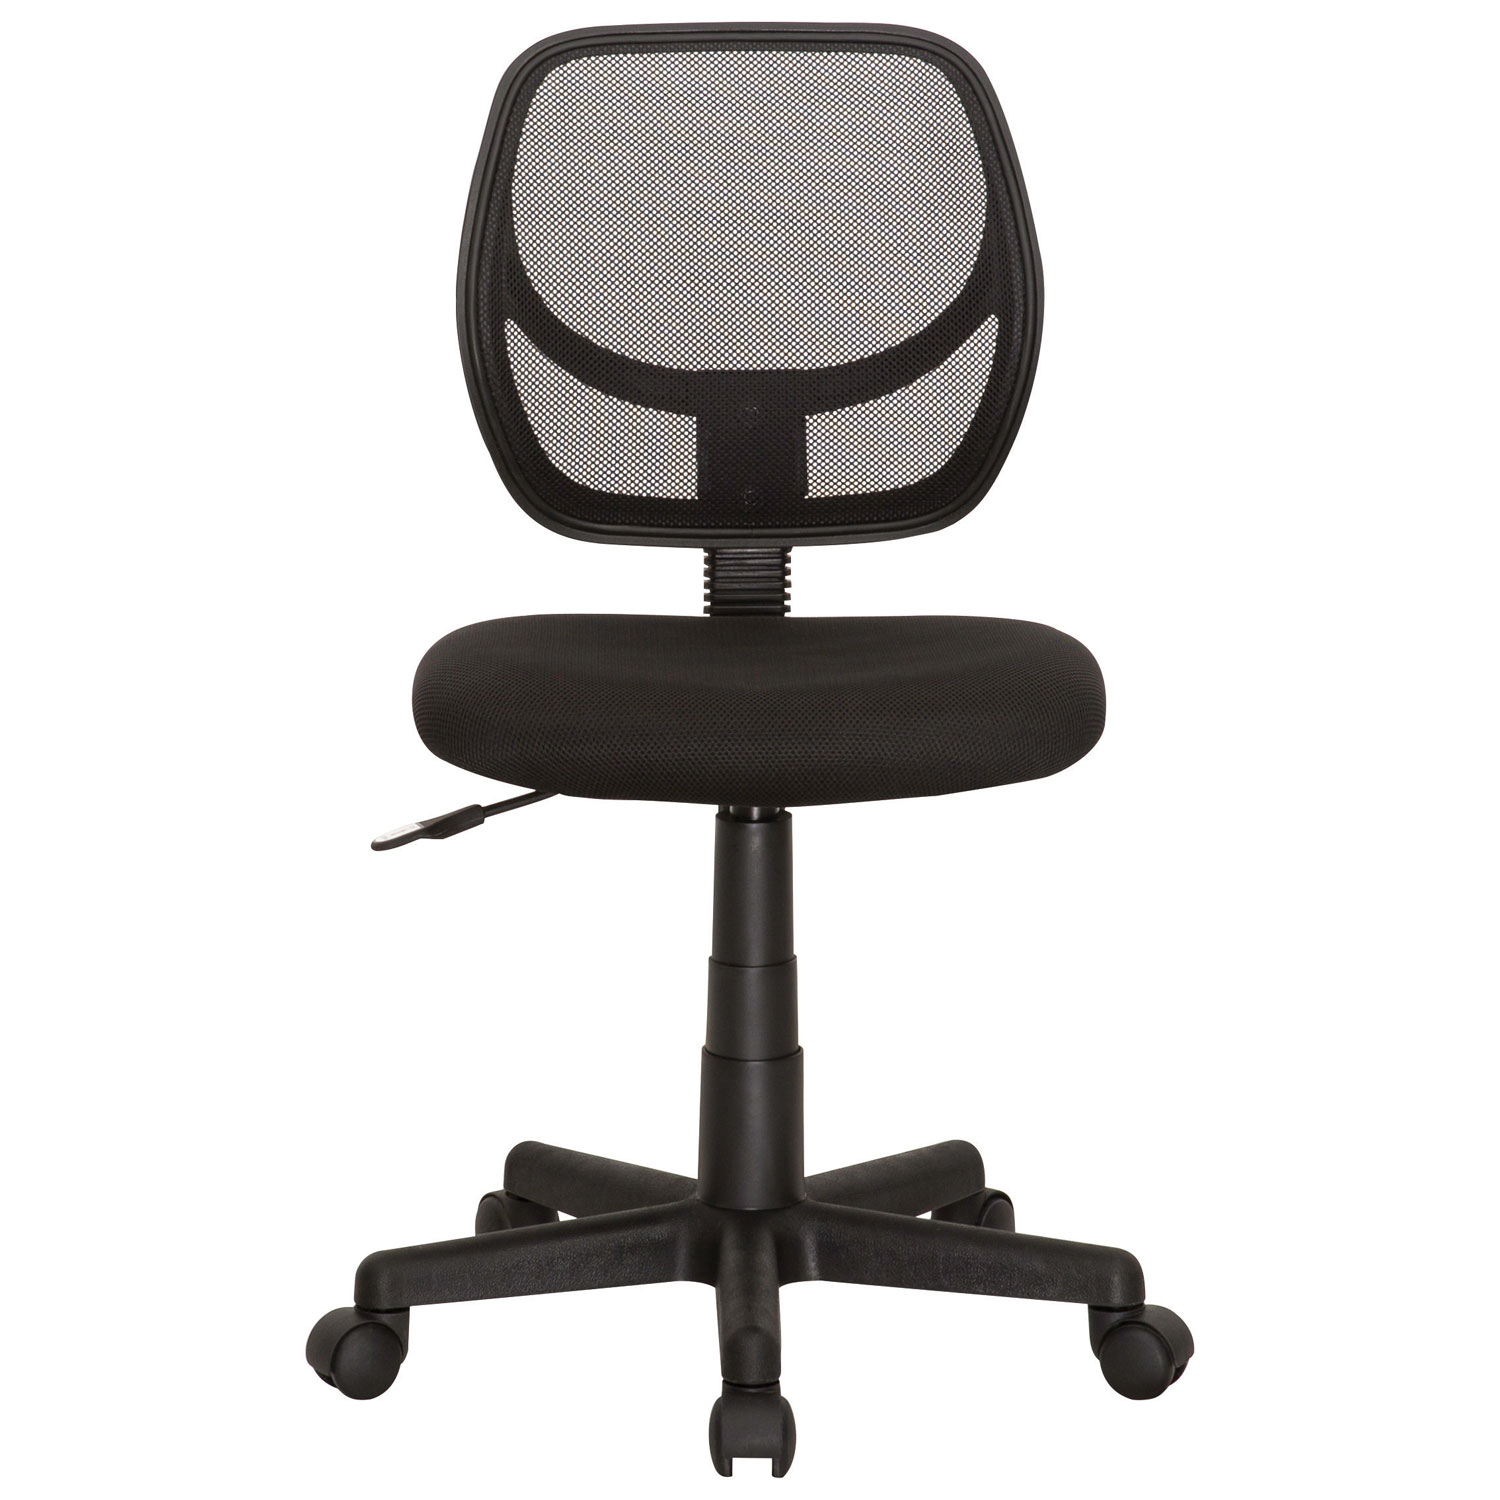 Milbrook Mesh Task Chair Black fice Chairs Best Buy Canada